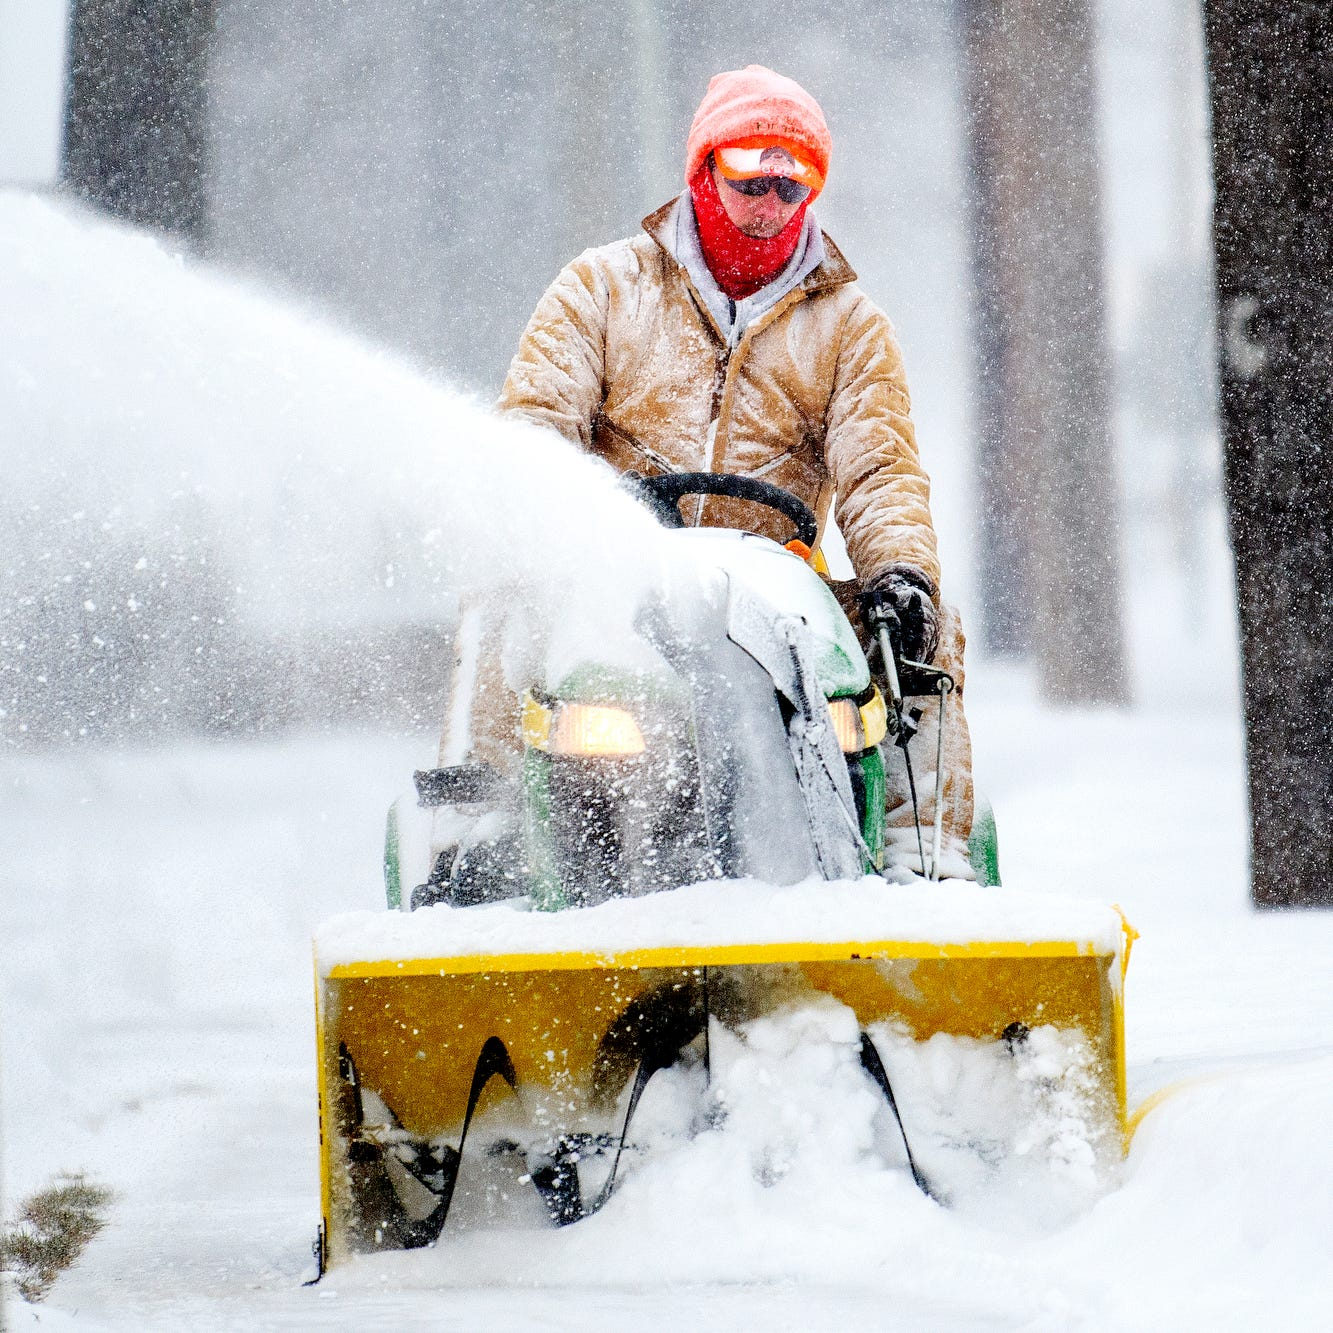 Brace yourselves, Lansing: 4 to 5 inches of snow expected Sunday into Monday